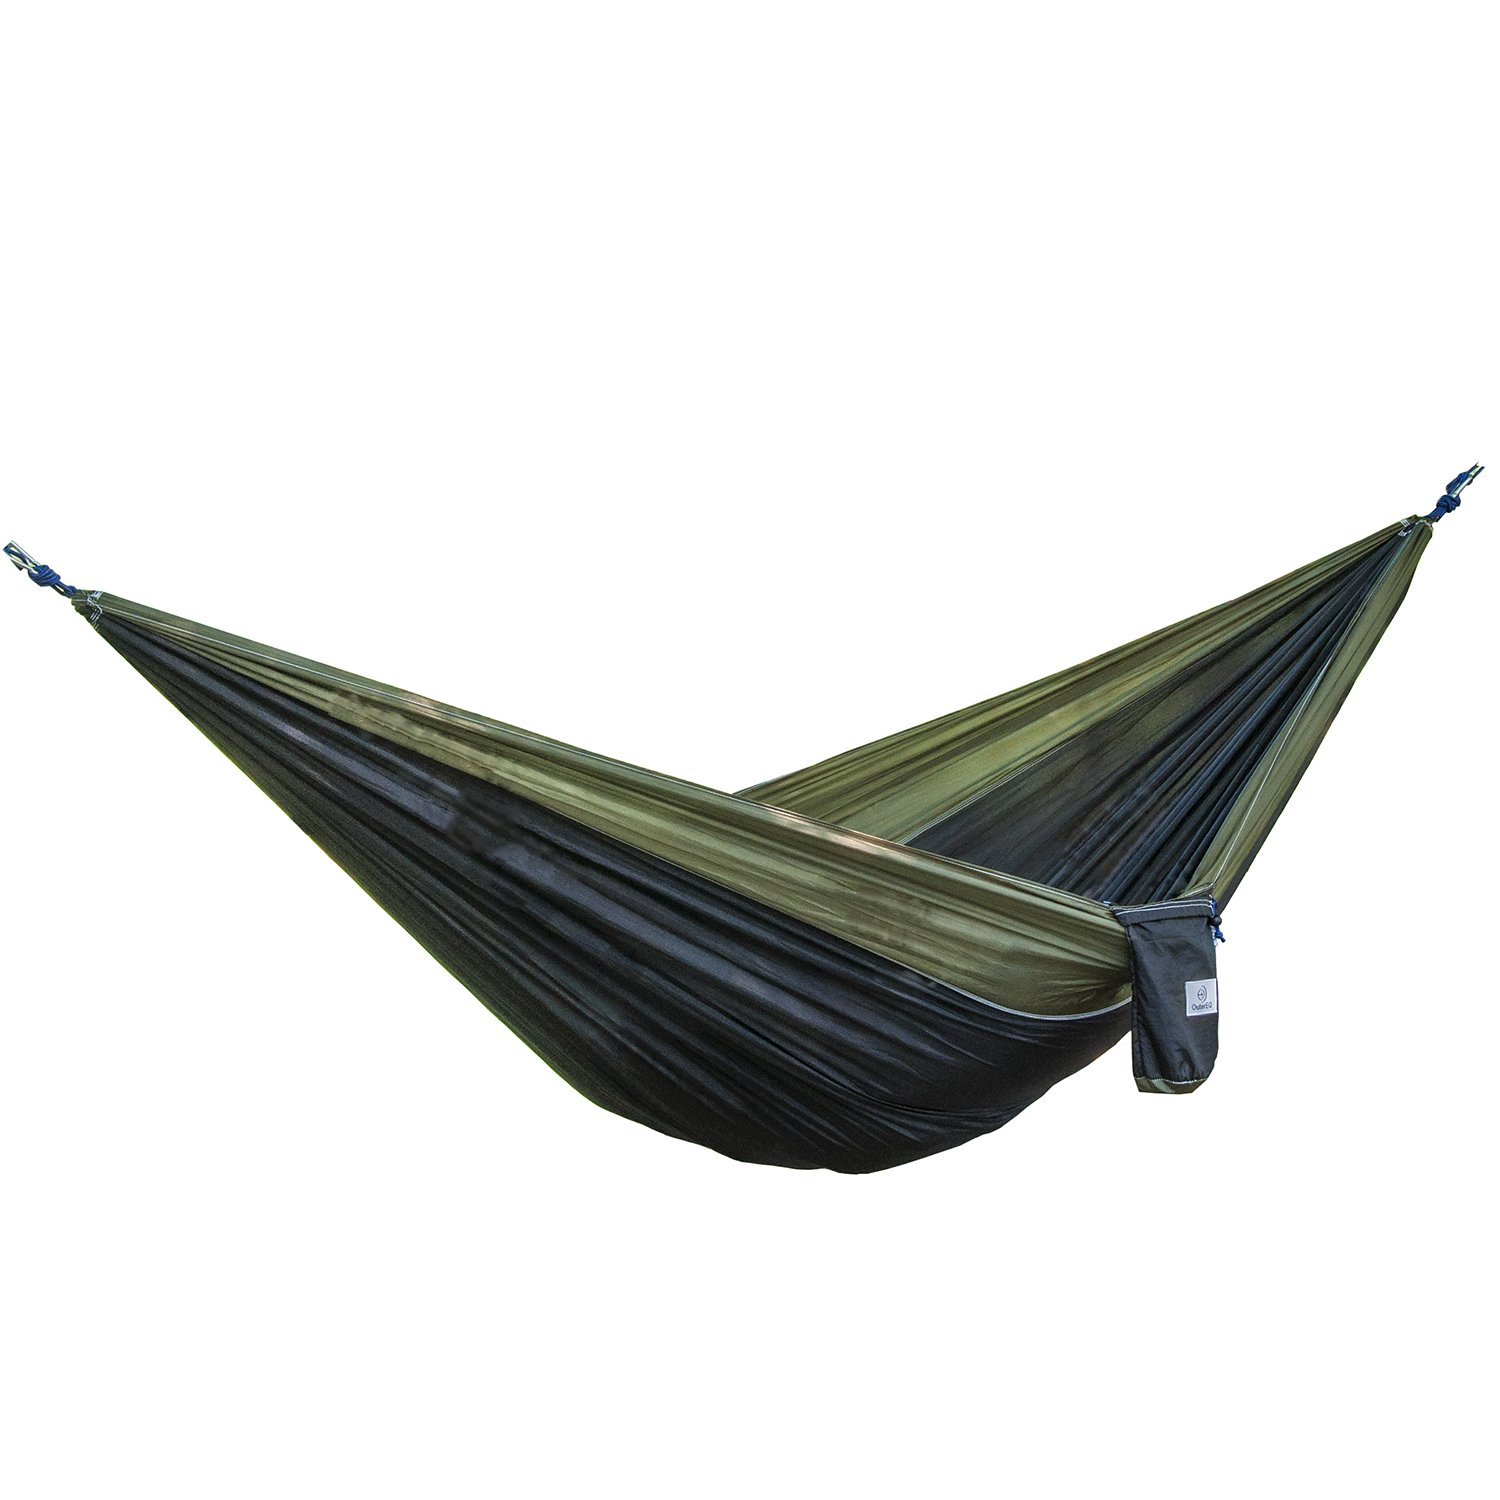 OuterEQ Portable Parachute Camping Hammocks Lightweight Nylon Fabric Travel Hammock (Olive/Black, 295cm x 198cm/Double) by OuterEQ